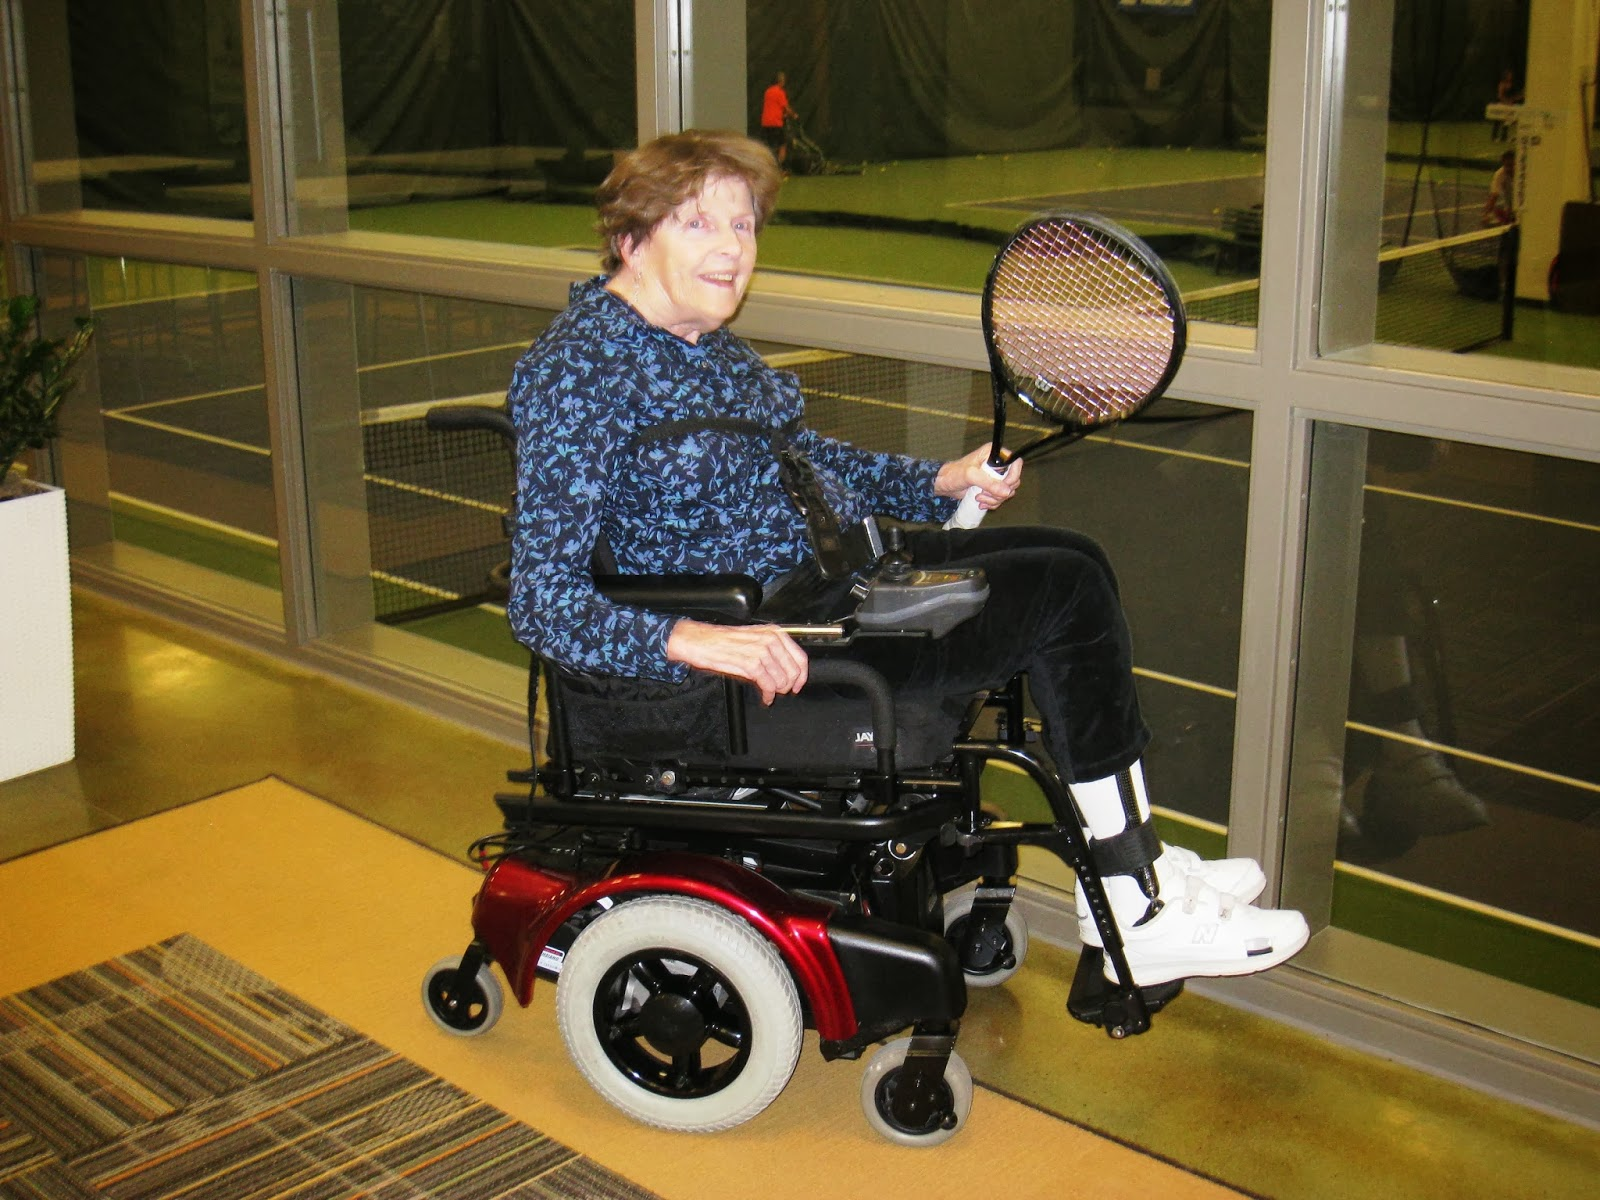 Wheelchair tennis with Madeline Smith anyone?